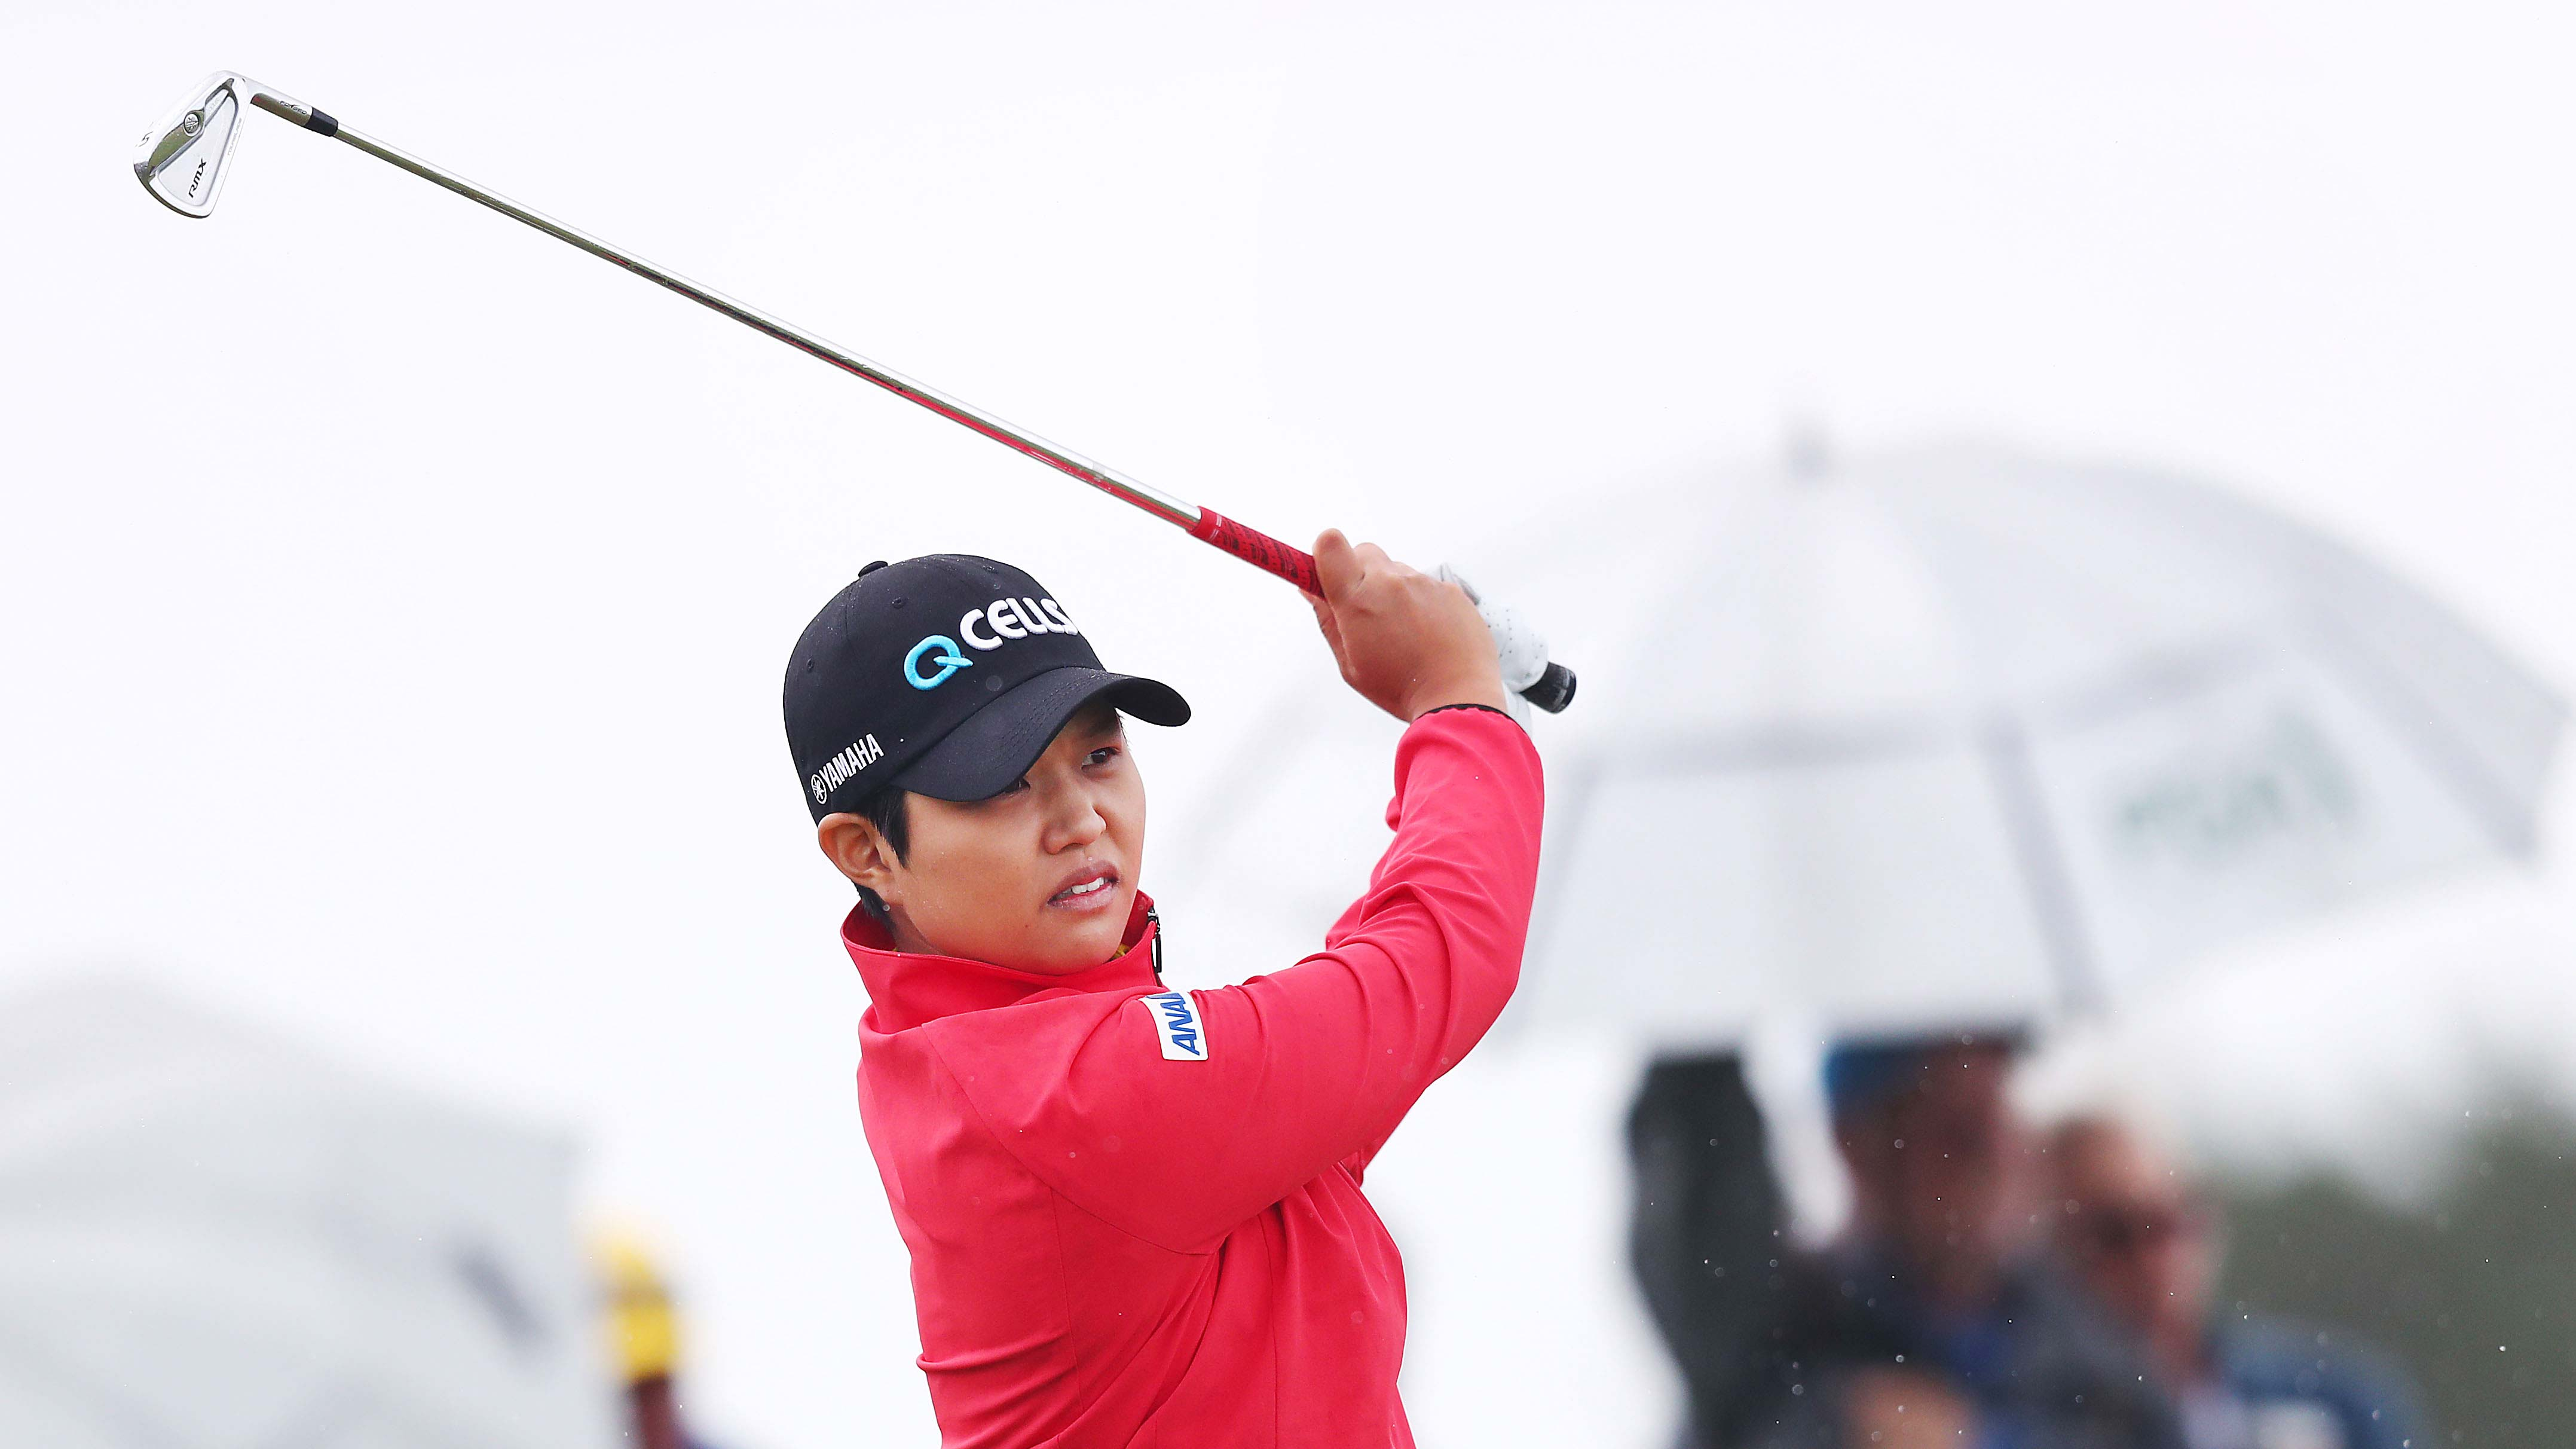 Haru Nomura of Japan hits an approach shot during her round of the ISPS Handa Vic Open at 13th Beach Golf Club on February 09, 2019 in Geelong, Australia